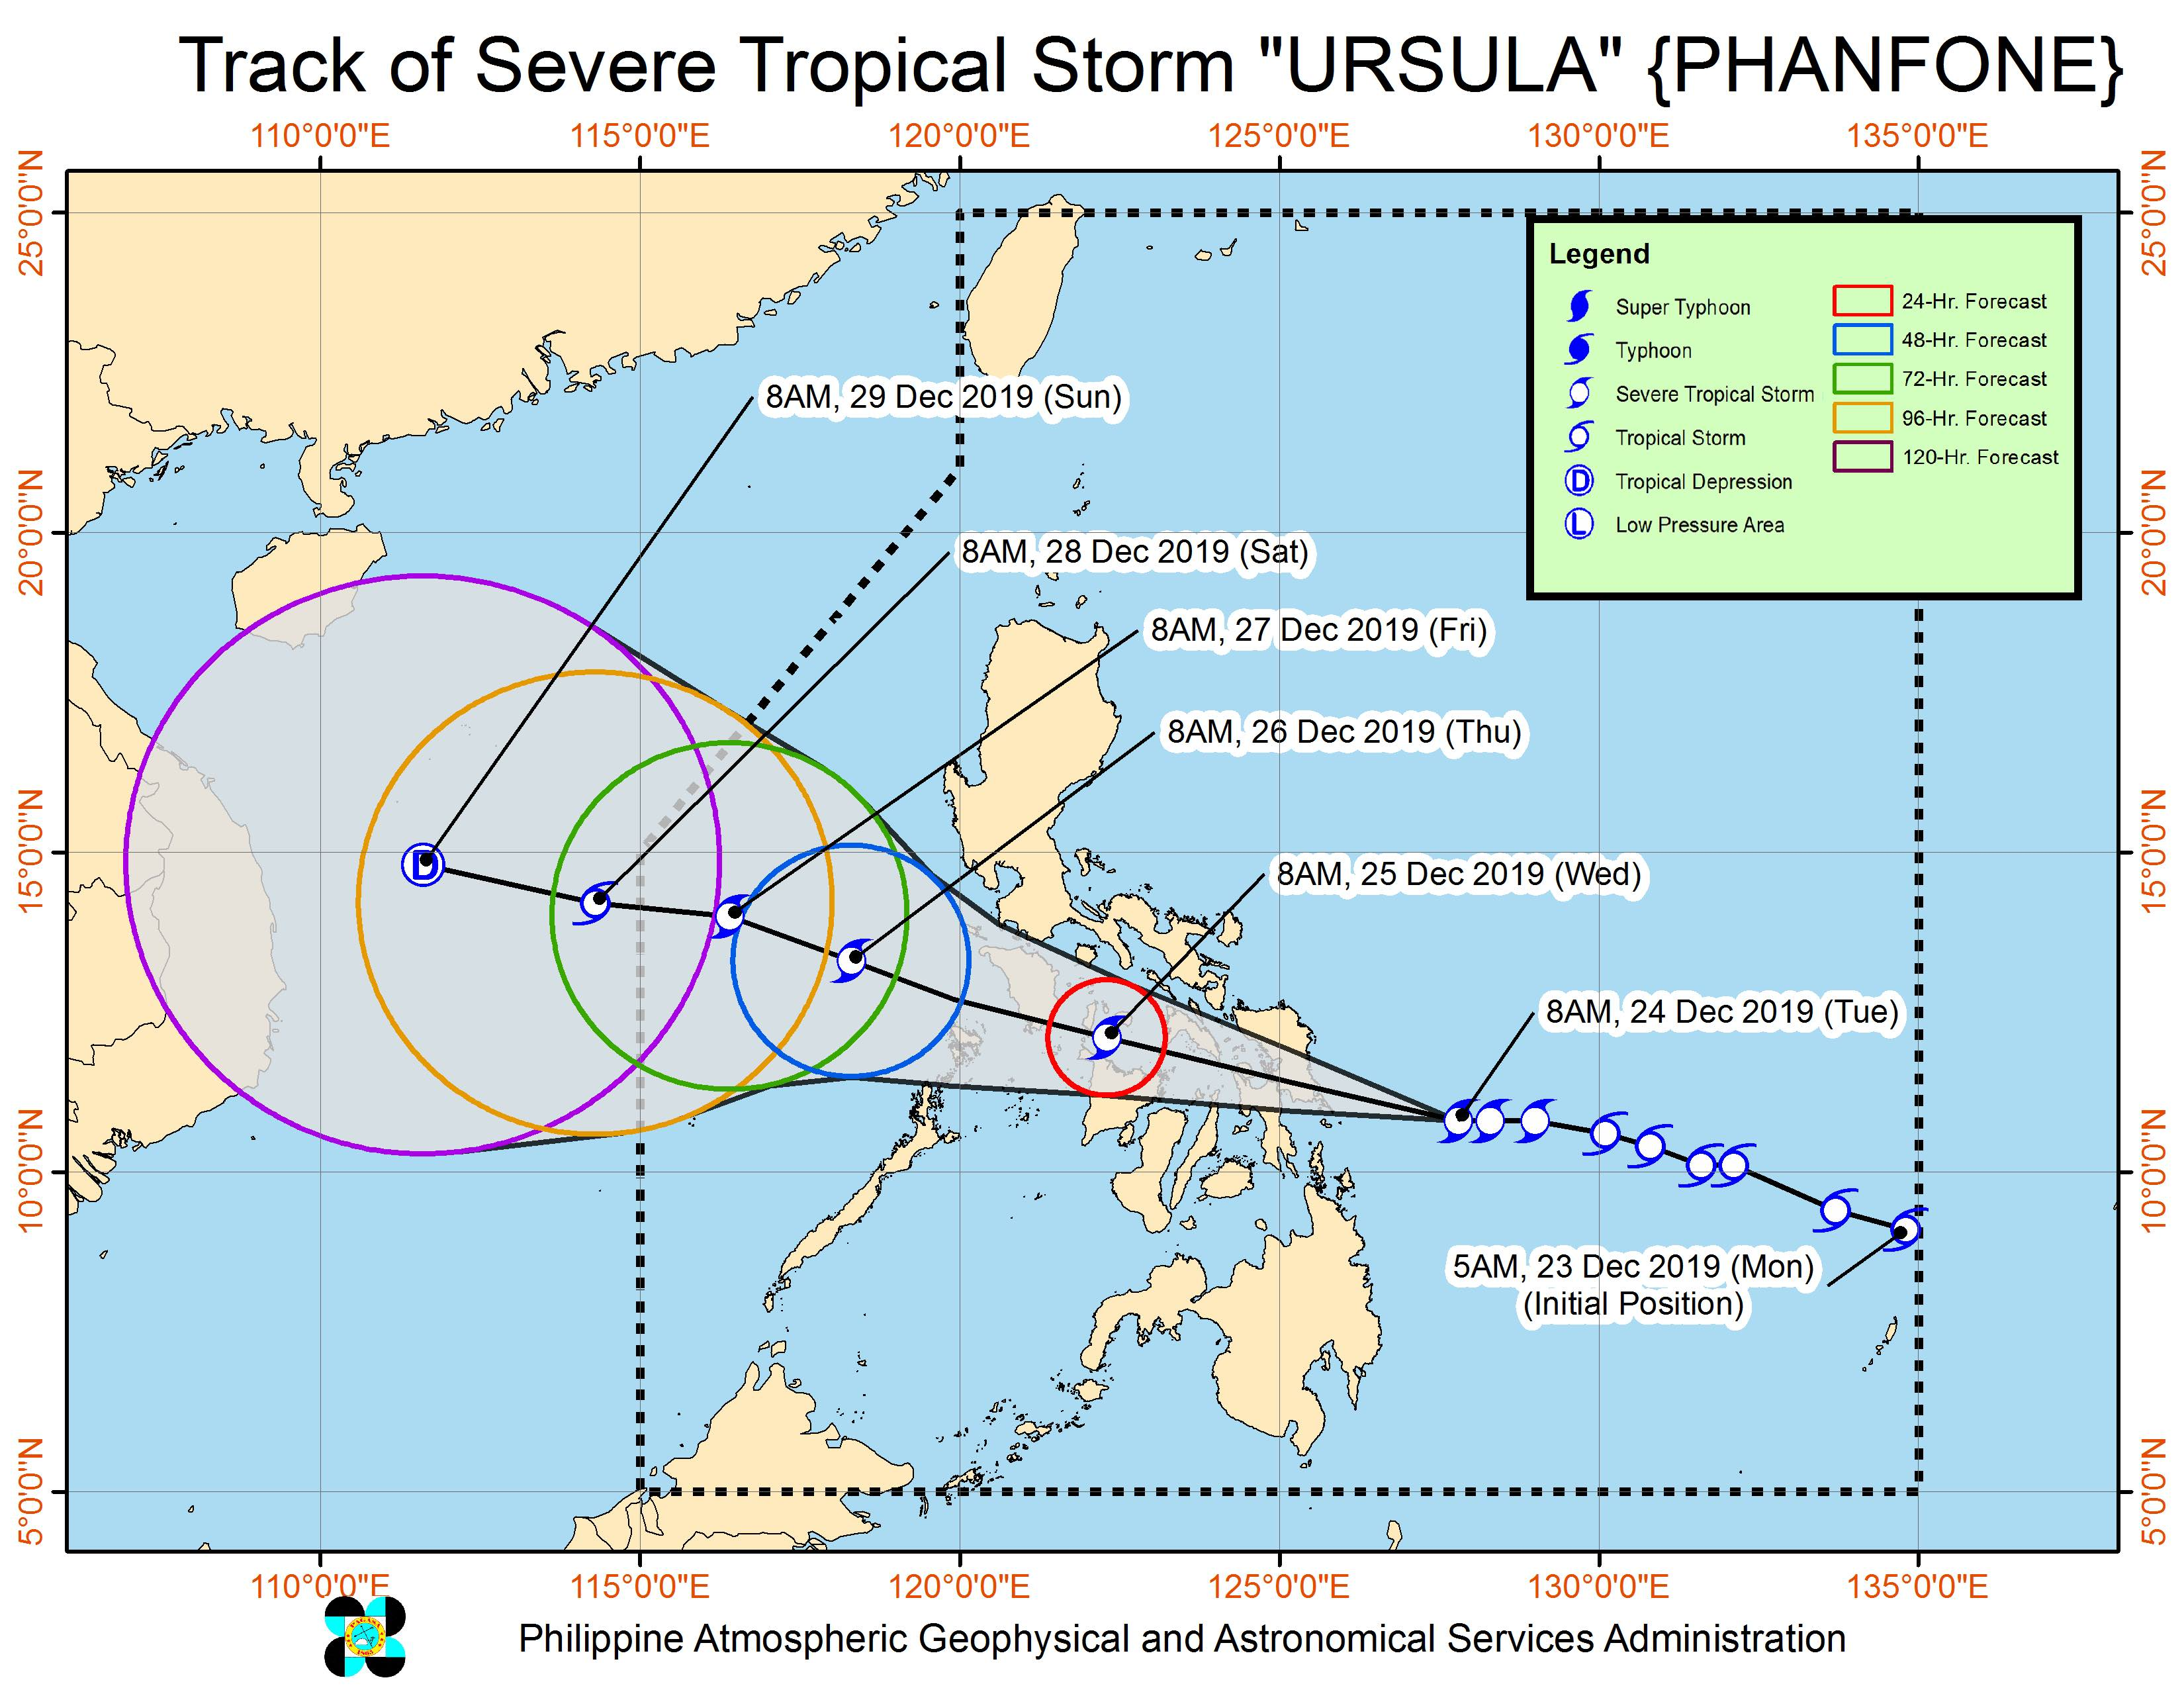 Forecast track of Severe Tropical Storm Ursula (Phanfone) as of December 24, 2019, 11 am. Image from PAGASA